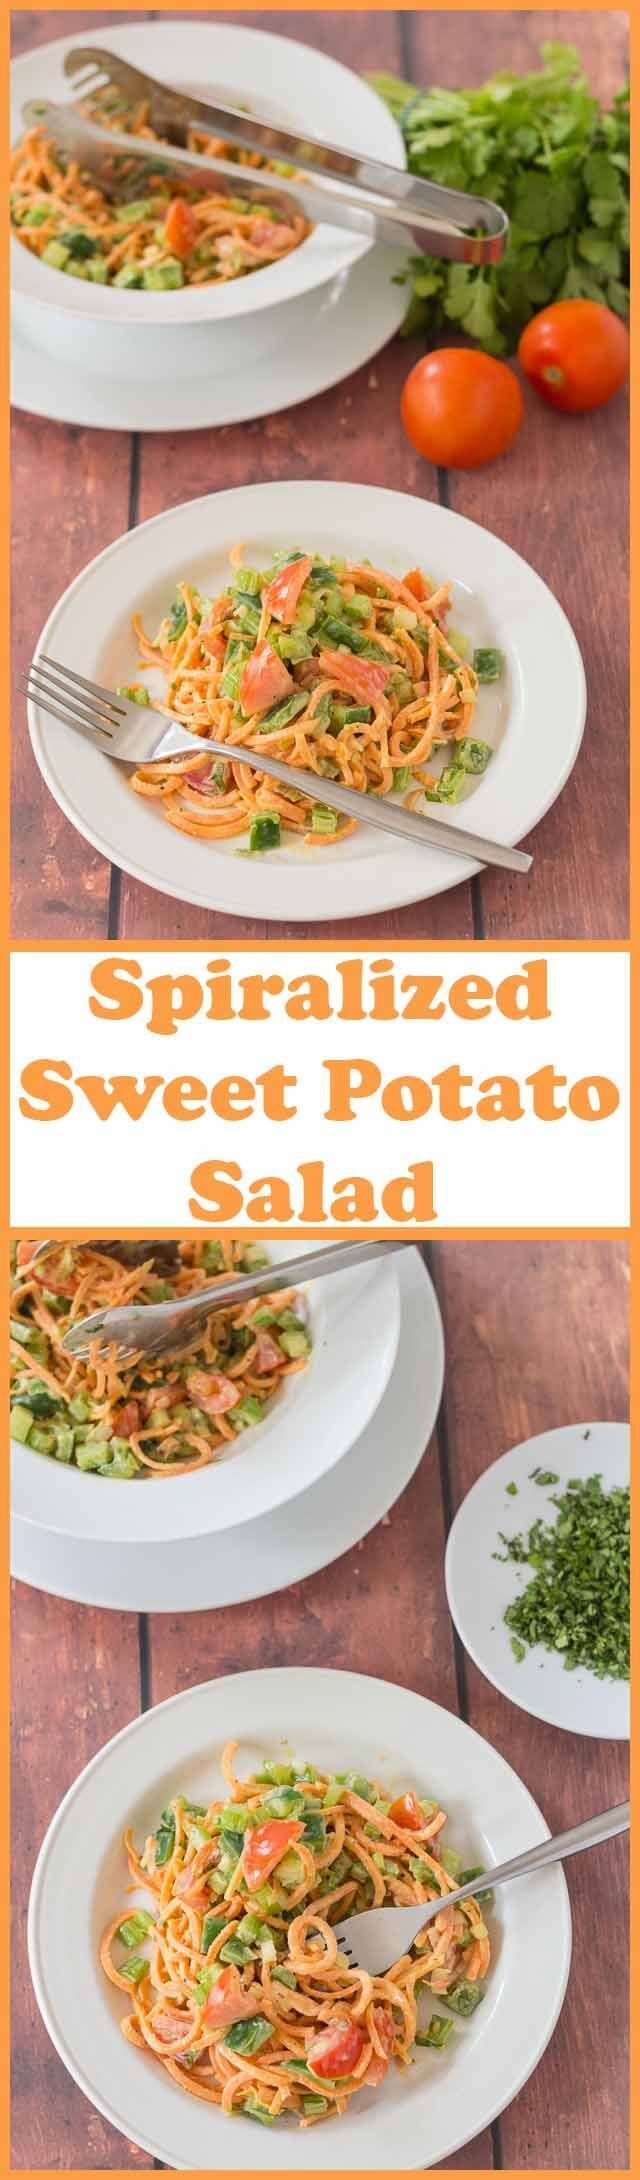 Spiralized sweet potato salad is a simple dish made with a healthier dressing compared to other salad dressing options. It's easy to make, a great way to use up leftovers and can be served as a main course or as a side! via @neilhealthymeal